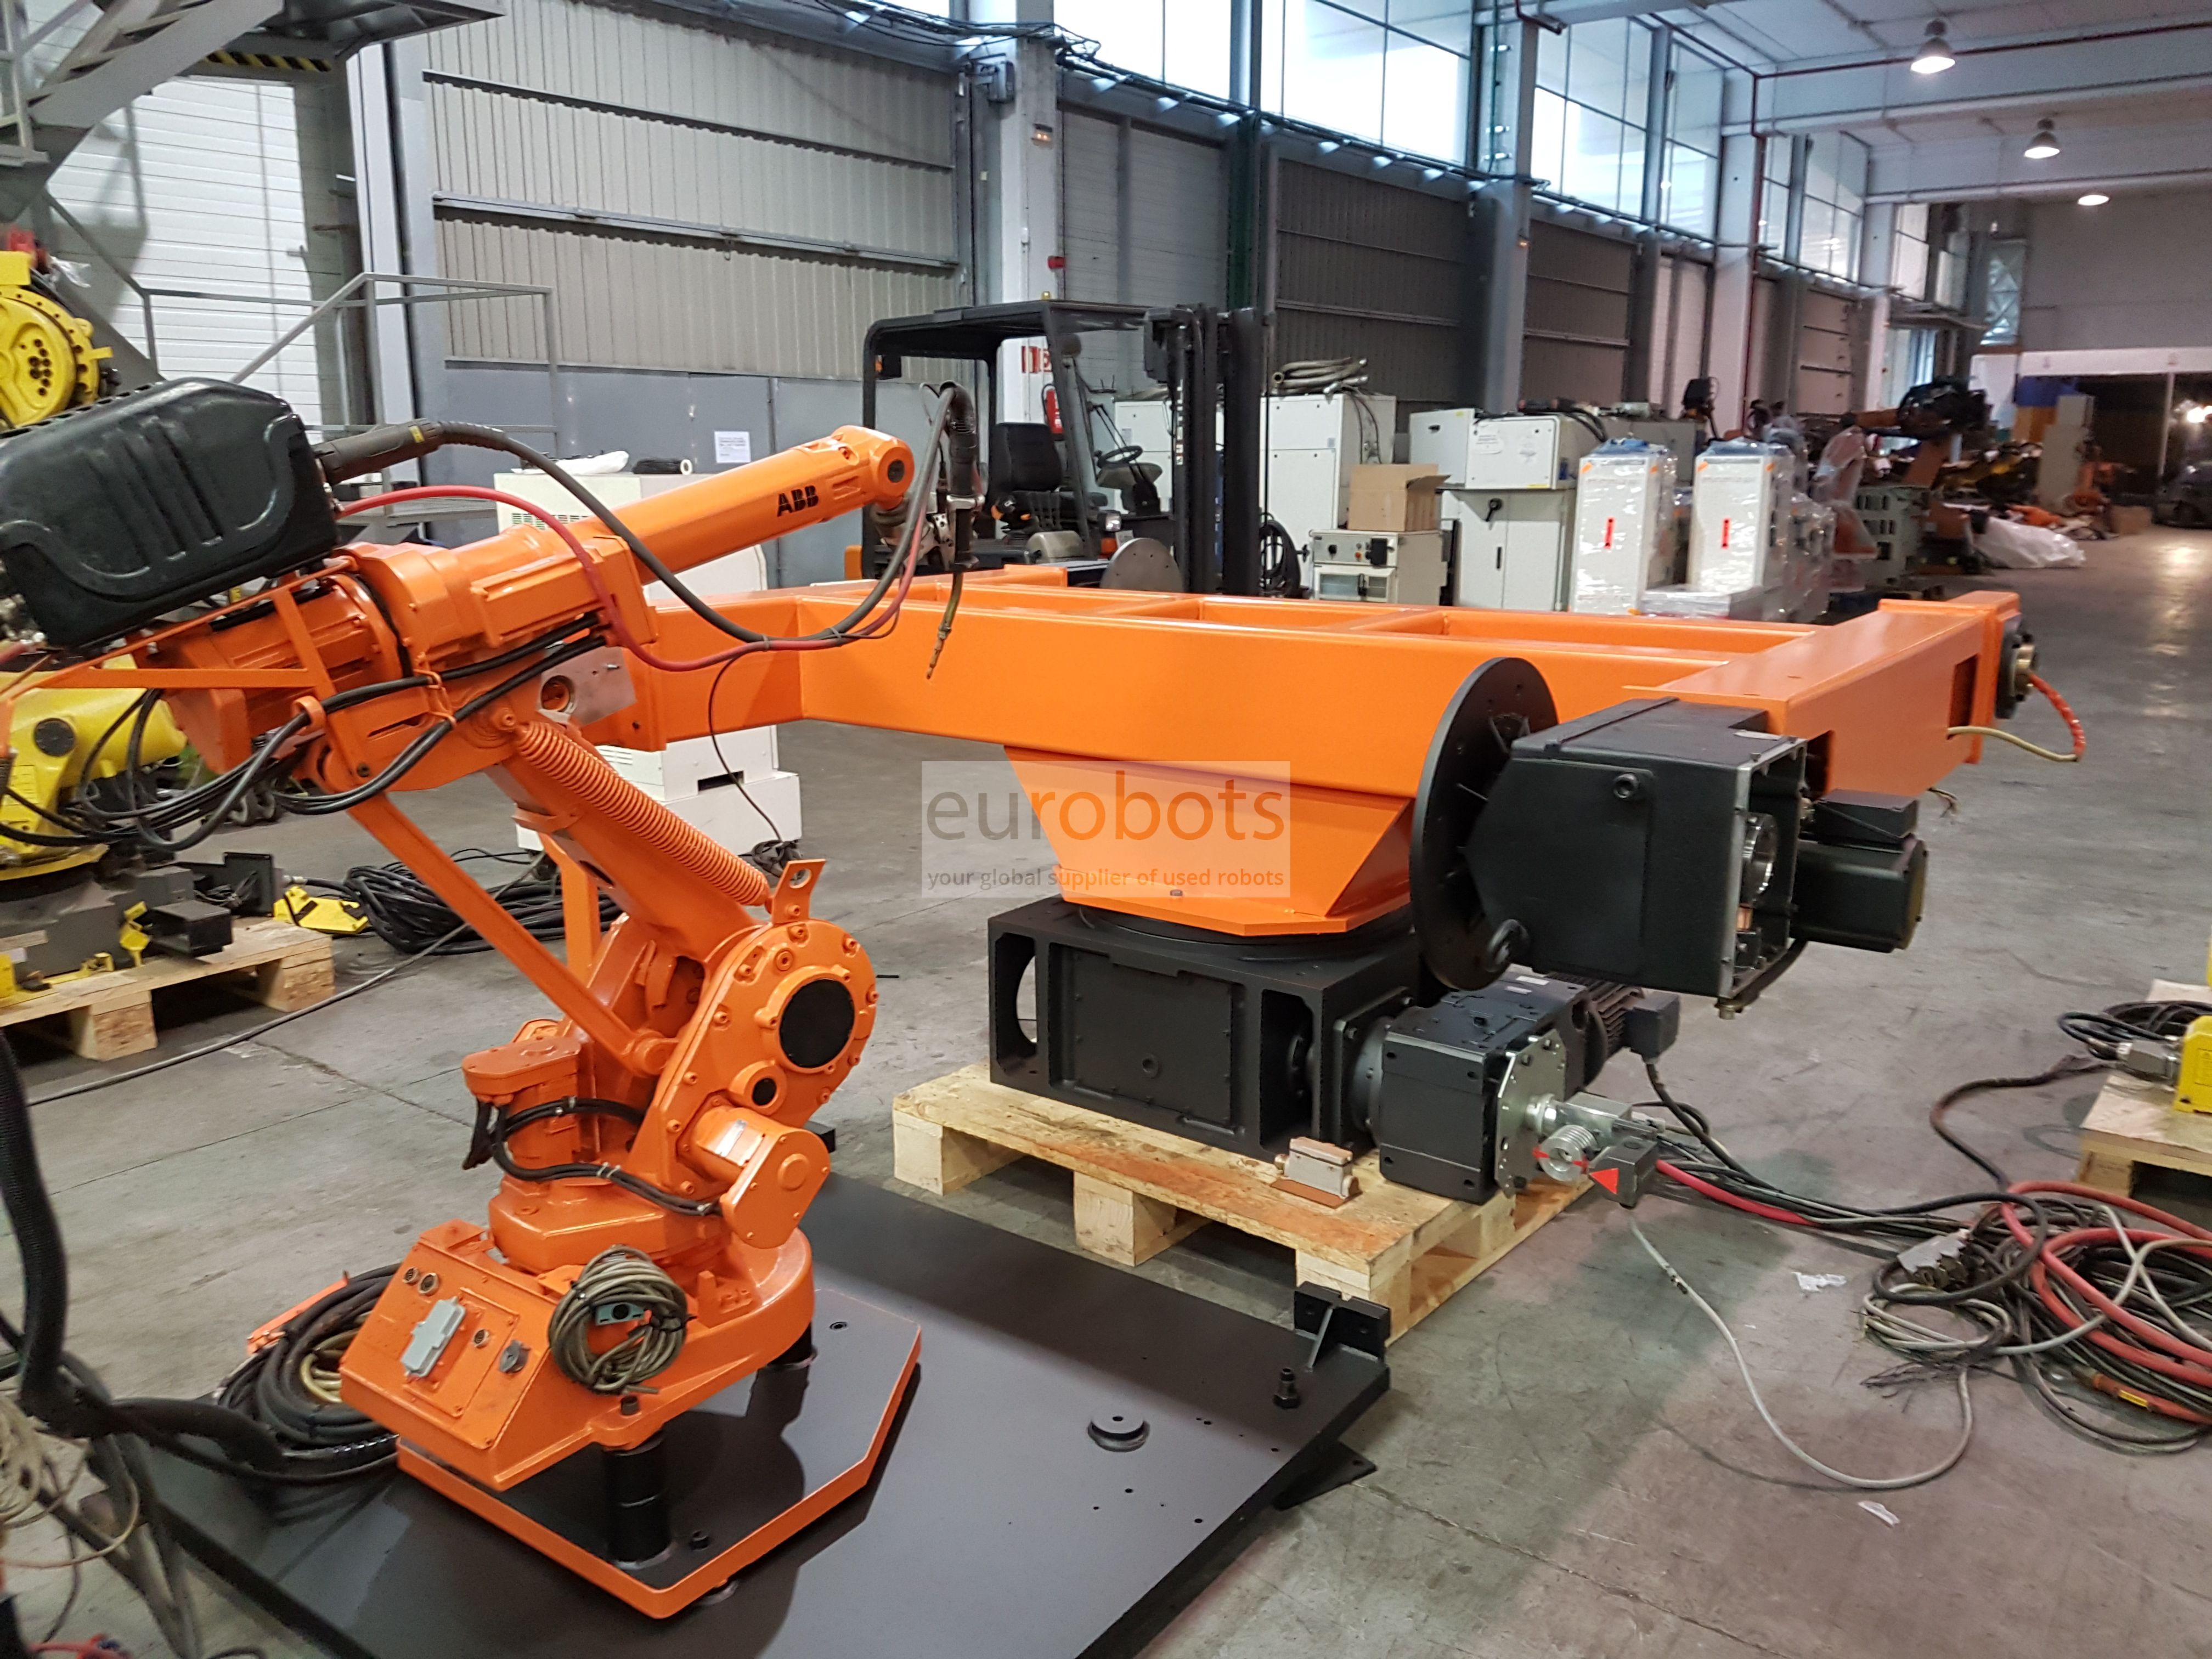 Abb Irb 1400 Arc Welding Cell With Irbp 250r Turning Table